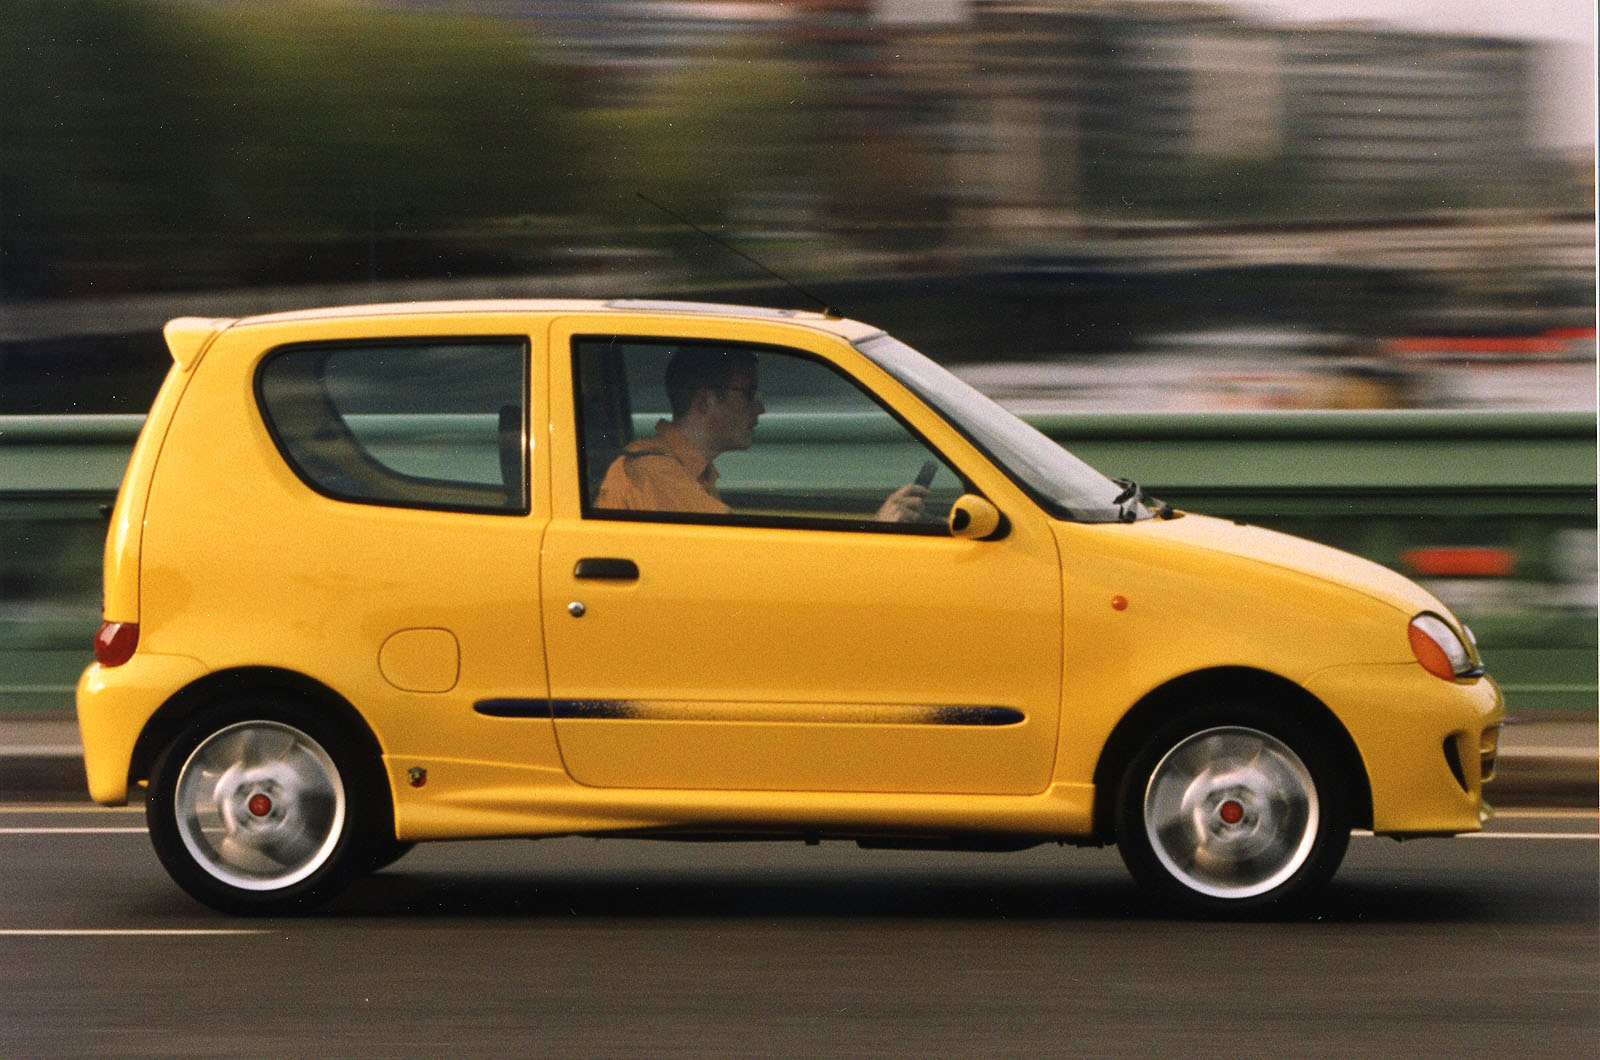 results saturday car november anglia classic fiat edition ltd seicento schumacher from michael auctions